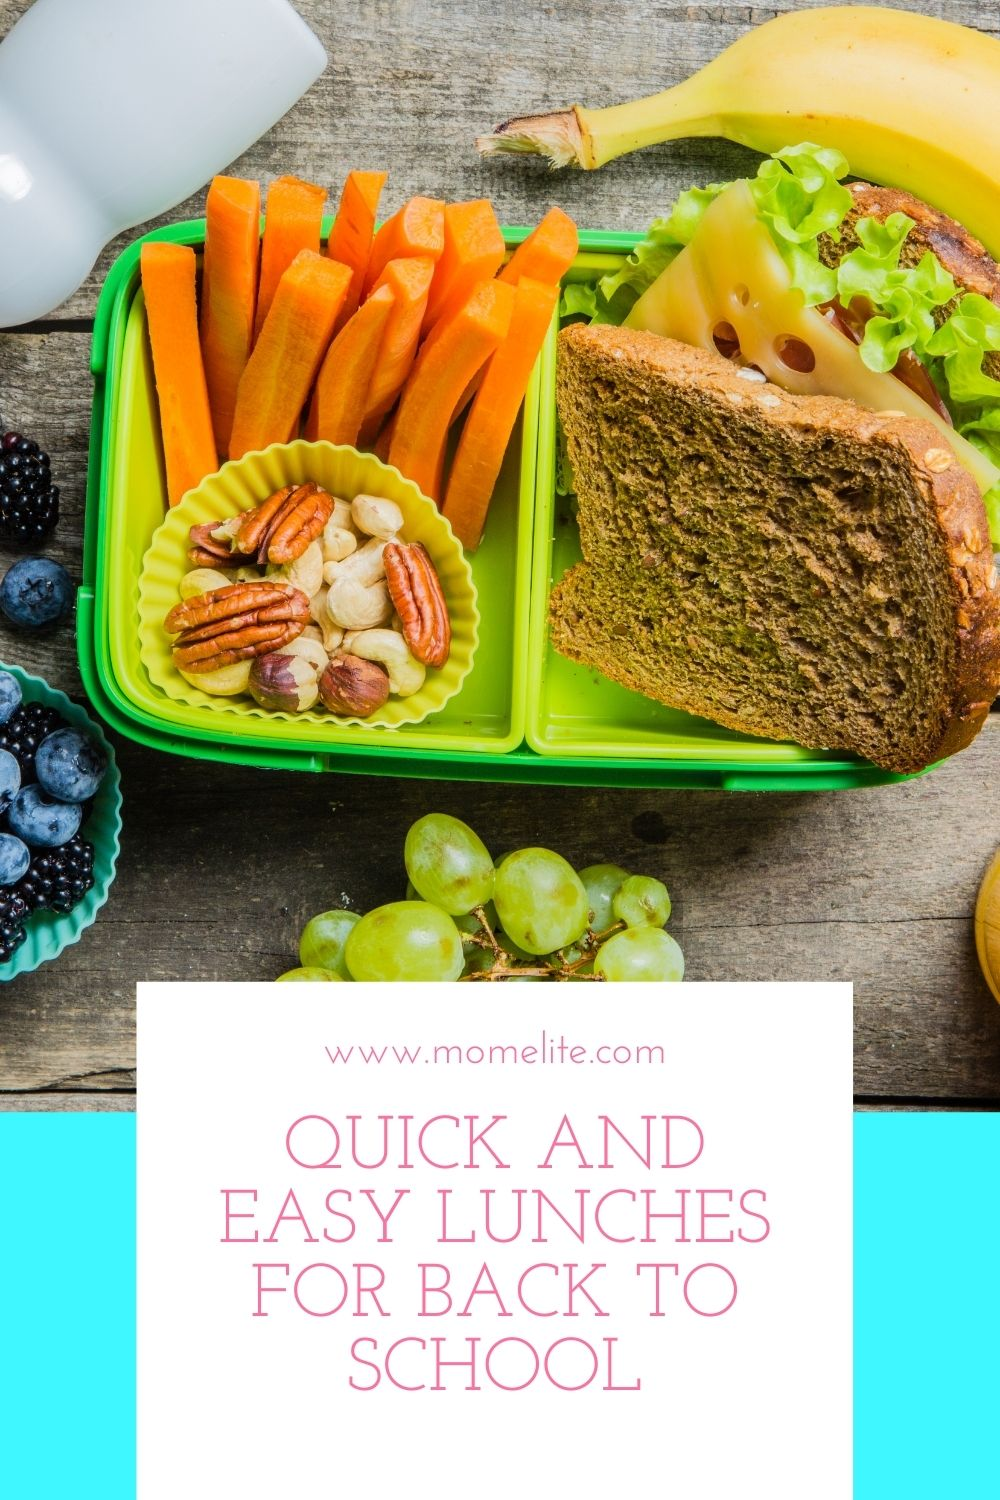 Quick and Easy Lunches For Back To School